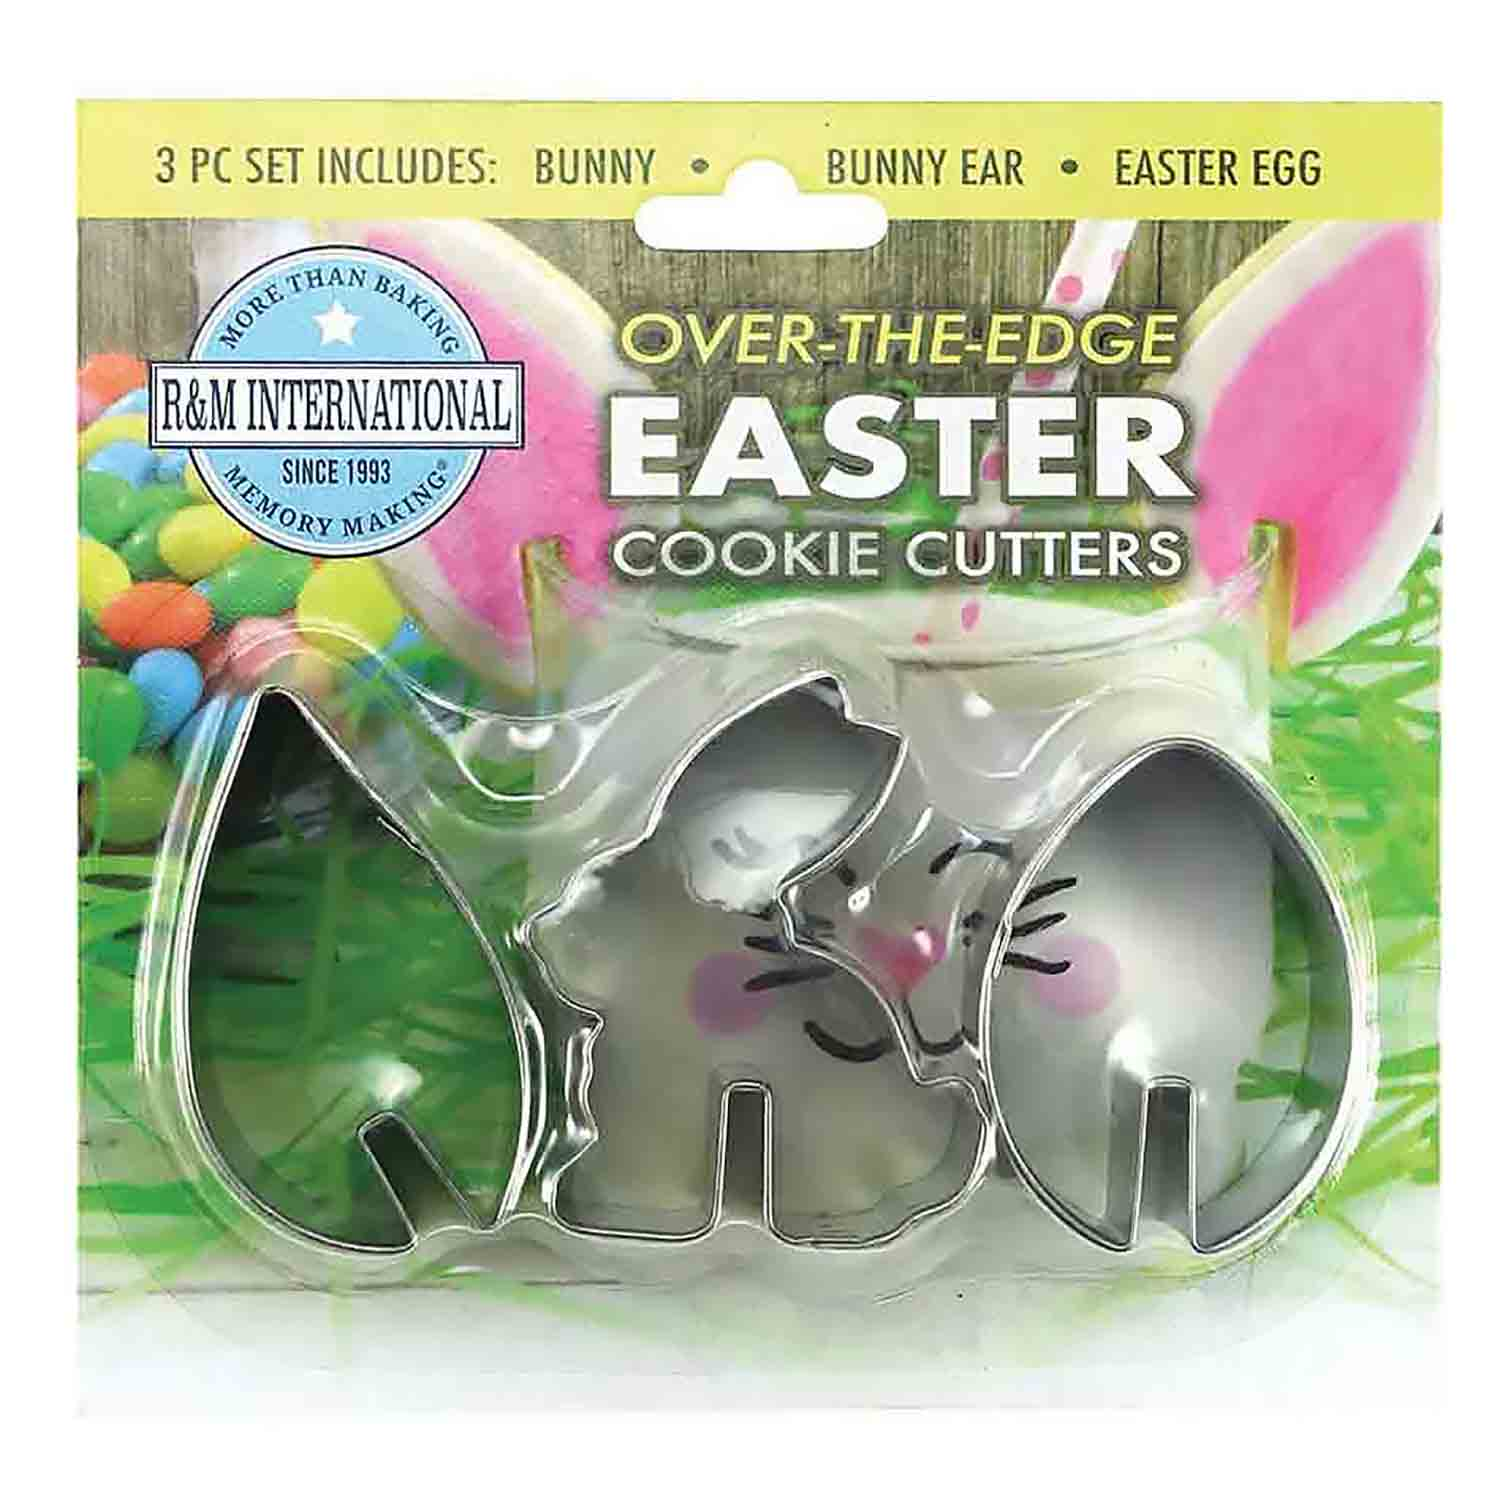 Over-The-Edge Easter Cookie Cutter Set